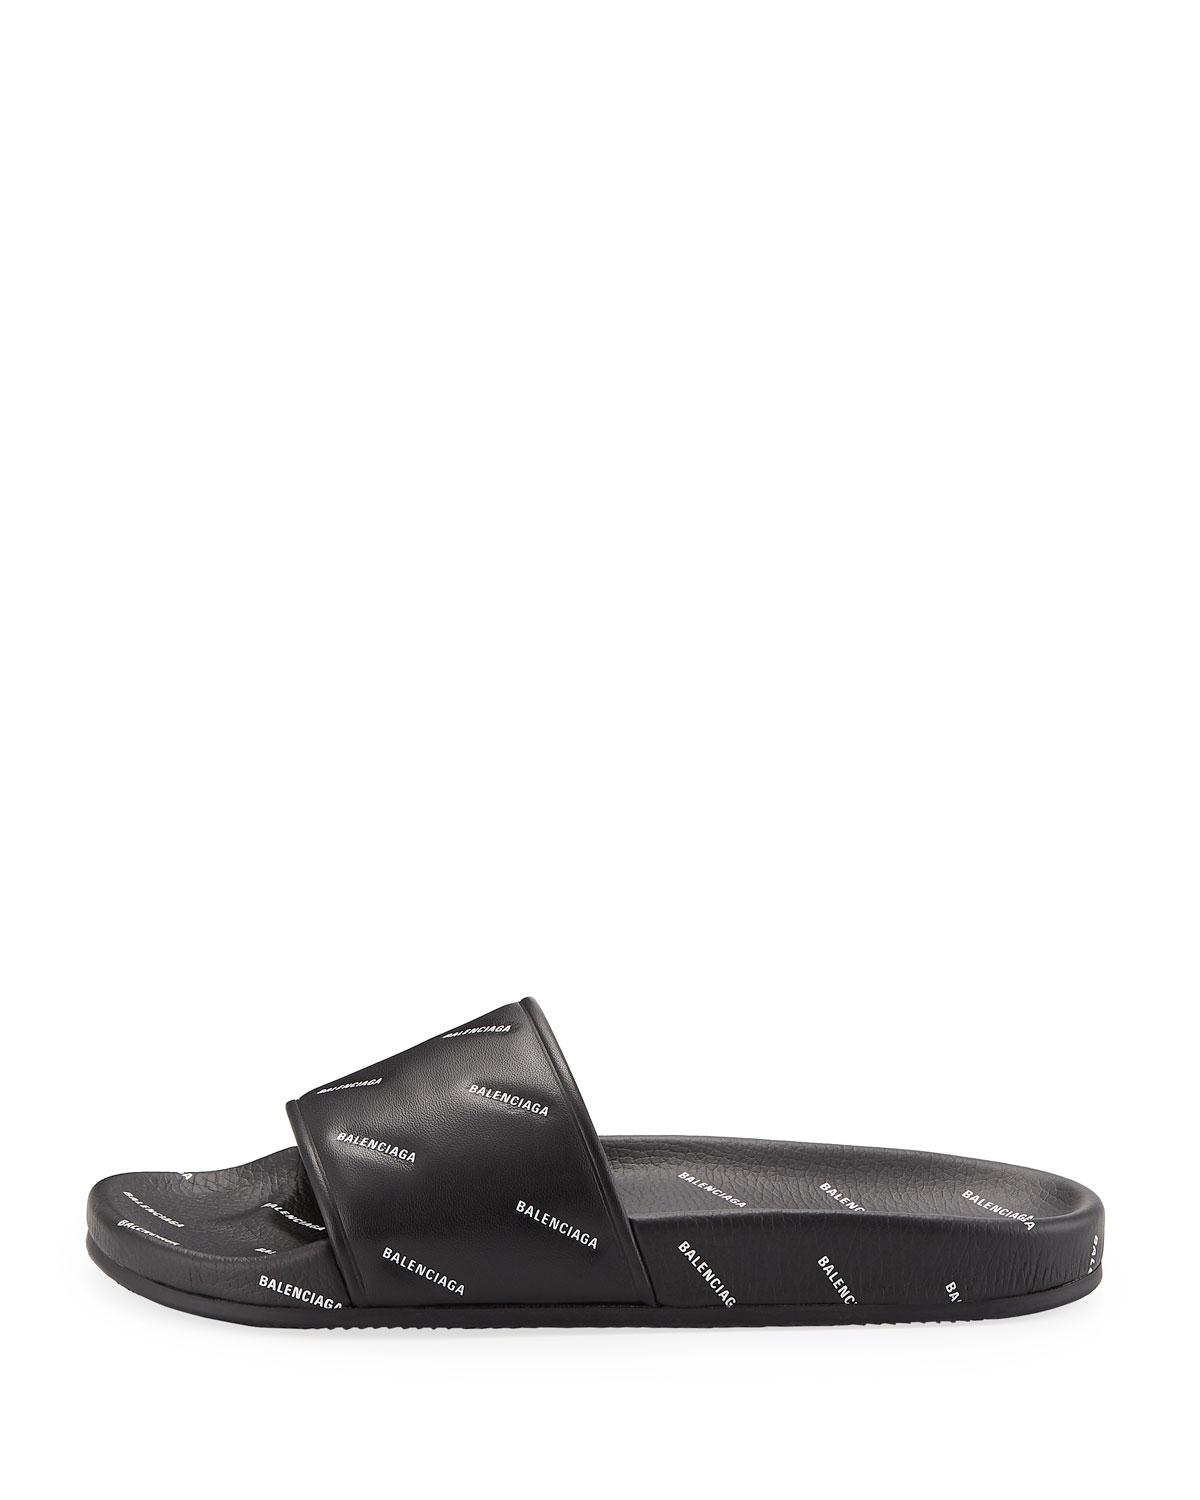 d5c82c5ebf198 Lyst - Balenciaga Leather Slides in Black for Men - Save 47%